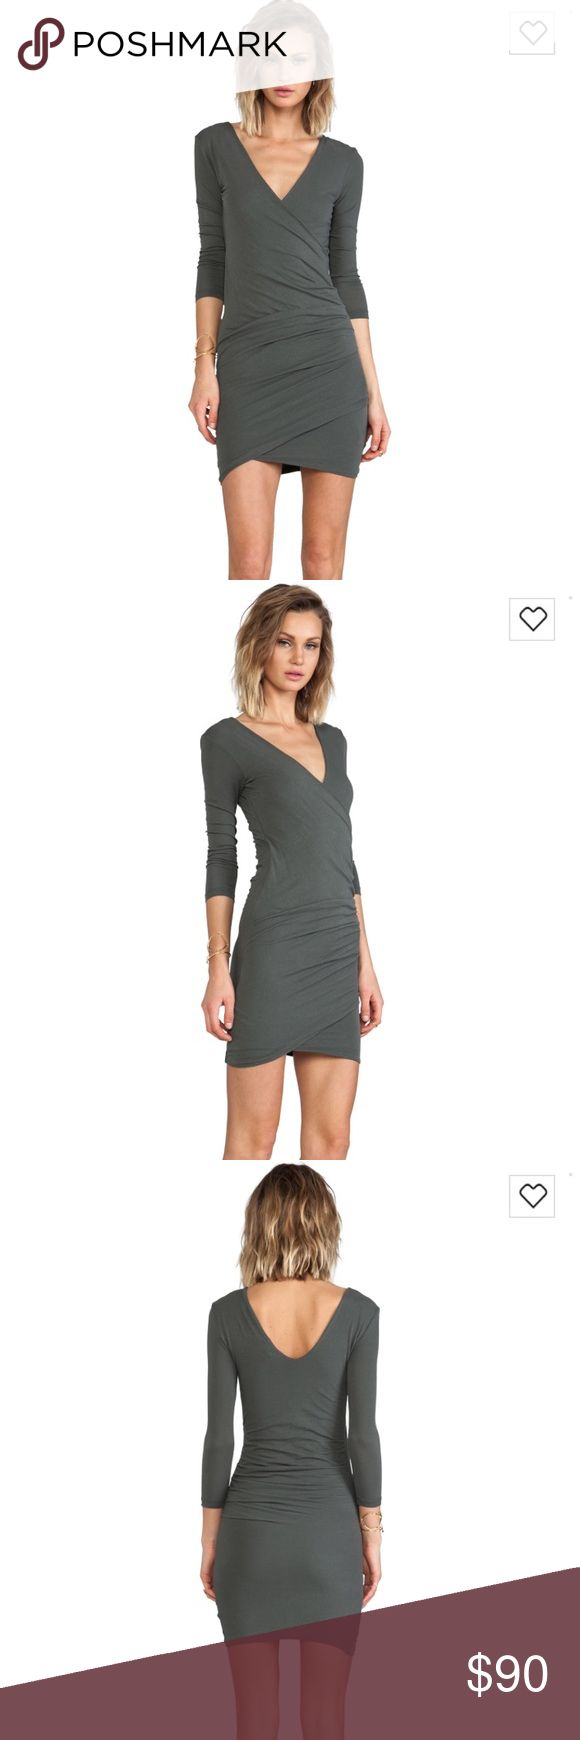 James Perse Forest green Skinny Wrap Tuck Dress L New without tag, SOLD OUT. size 3=L. James Perse Dresses